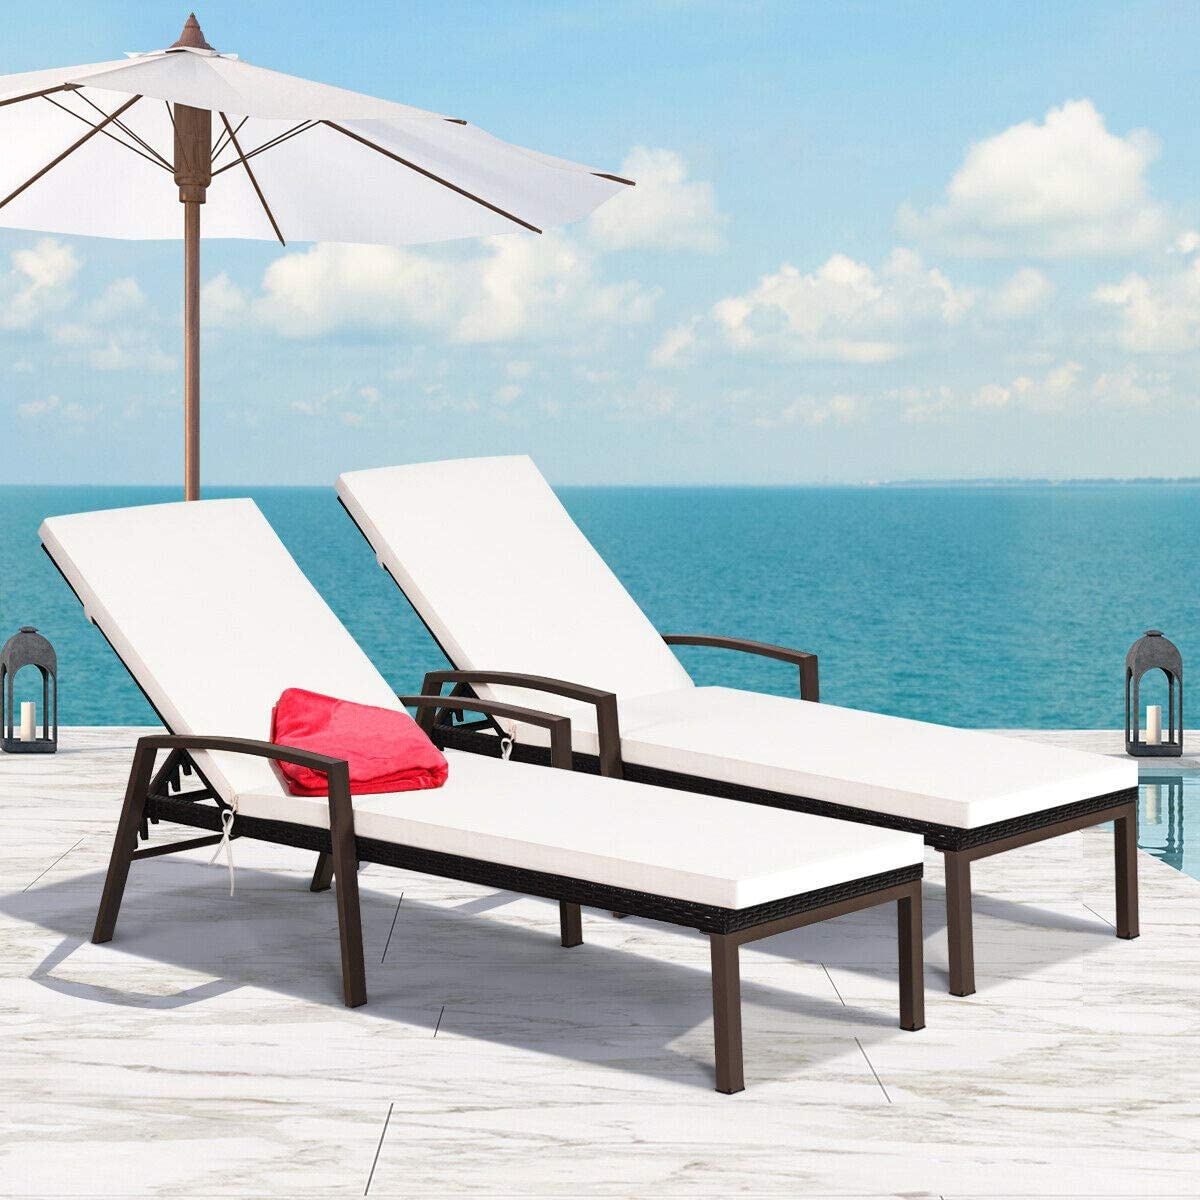 Happygrill Patio Reclining Chaise Lounge 2pcs Outdoor Rattan Wicker Lounge Chair Set with Armrest and Cushions